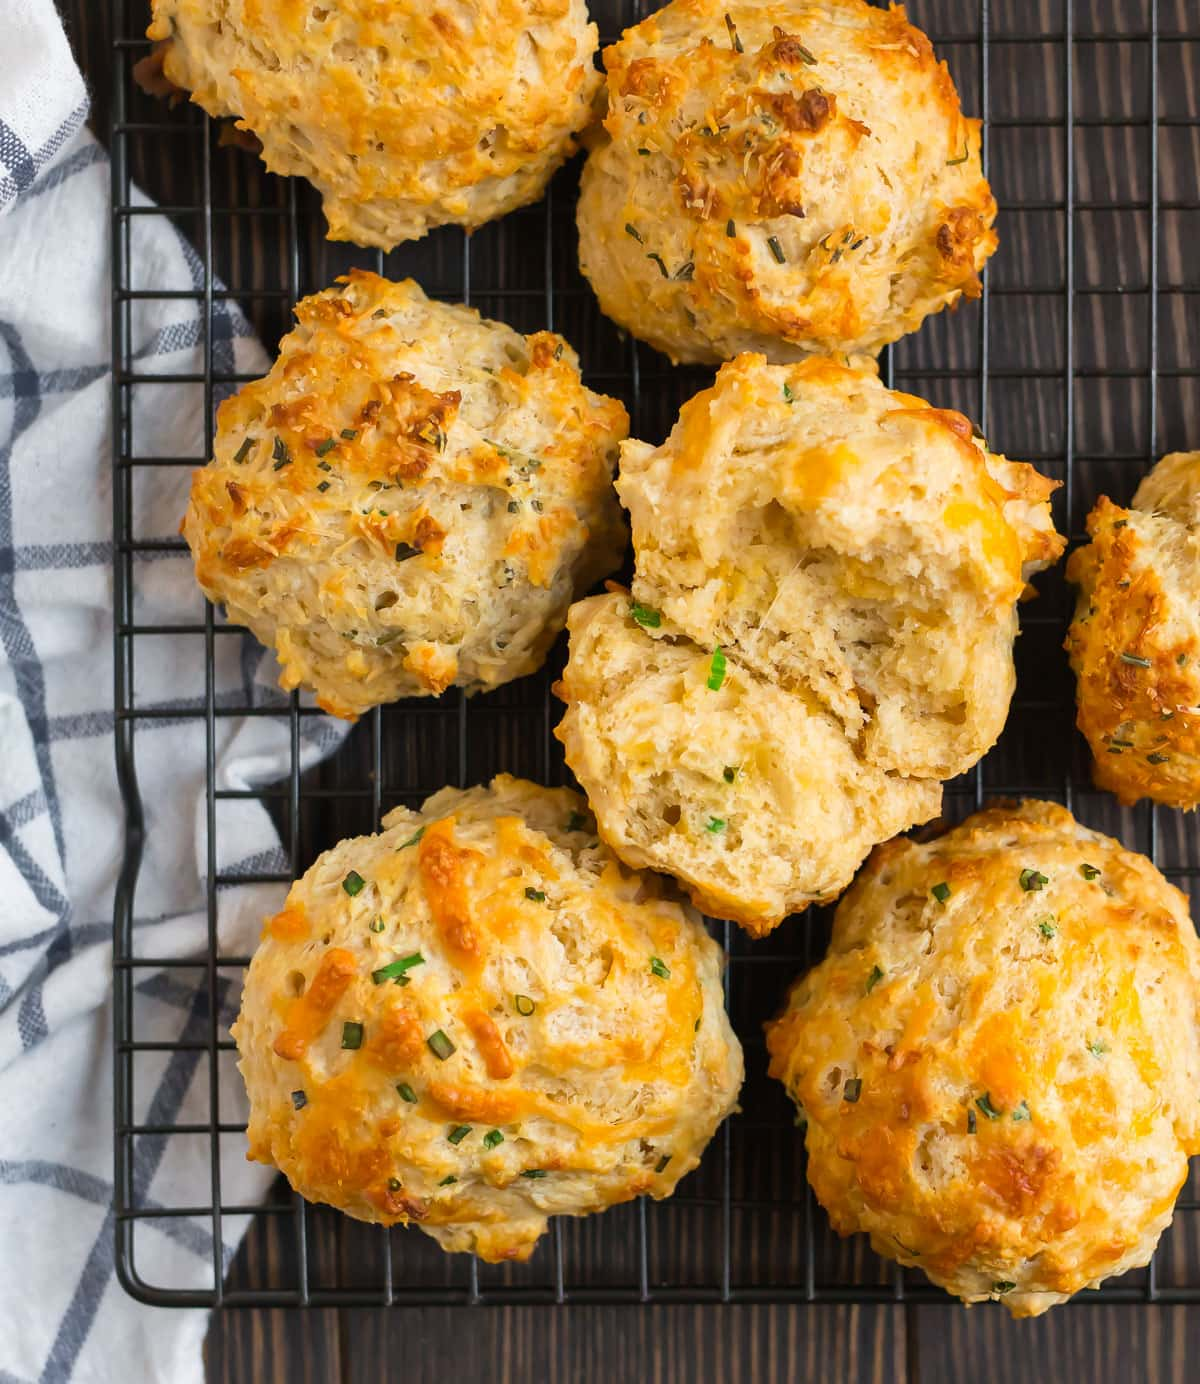 Fluffy cheddar drop biscuits on a wire rack